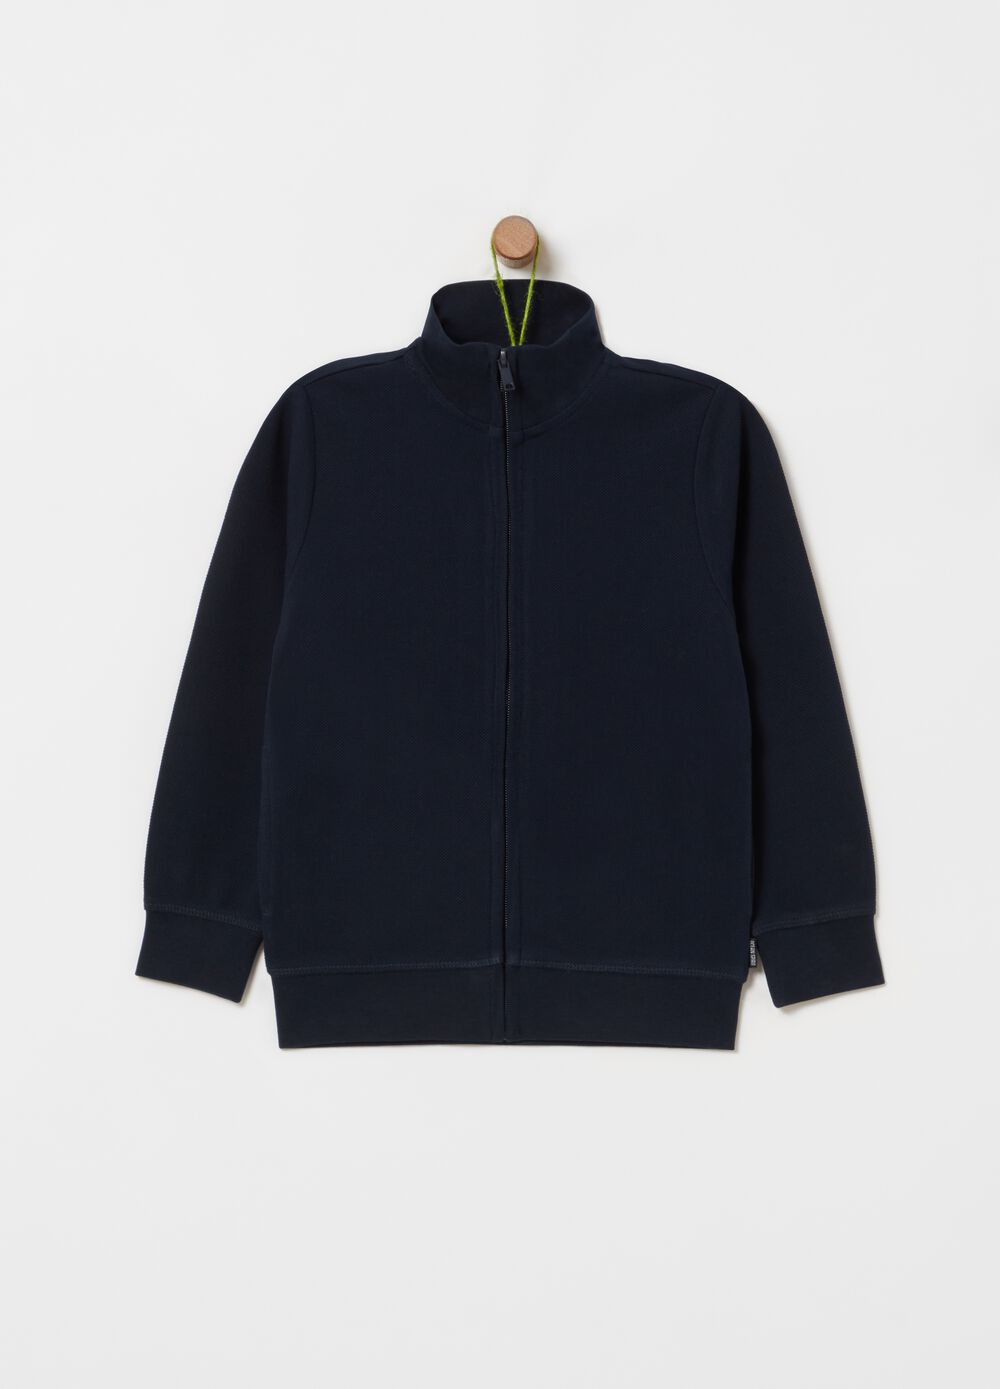 Full-zip sweatshirt in 100% organic cotton with high neck